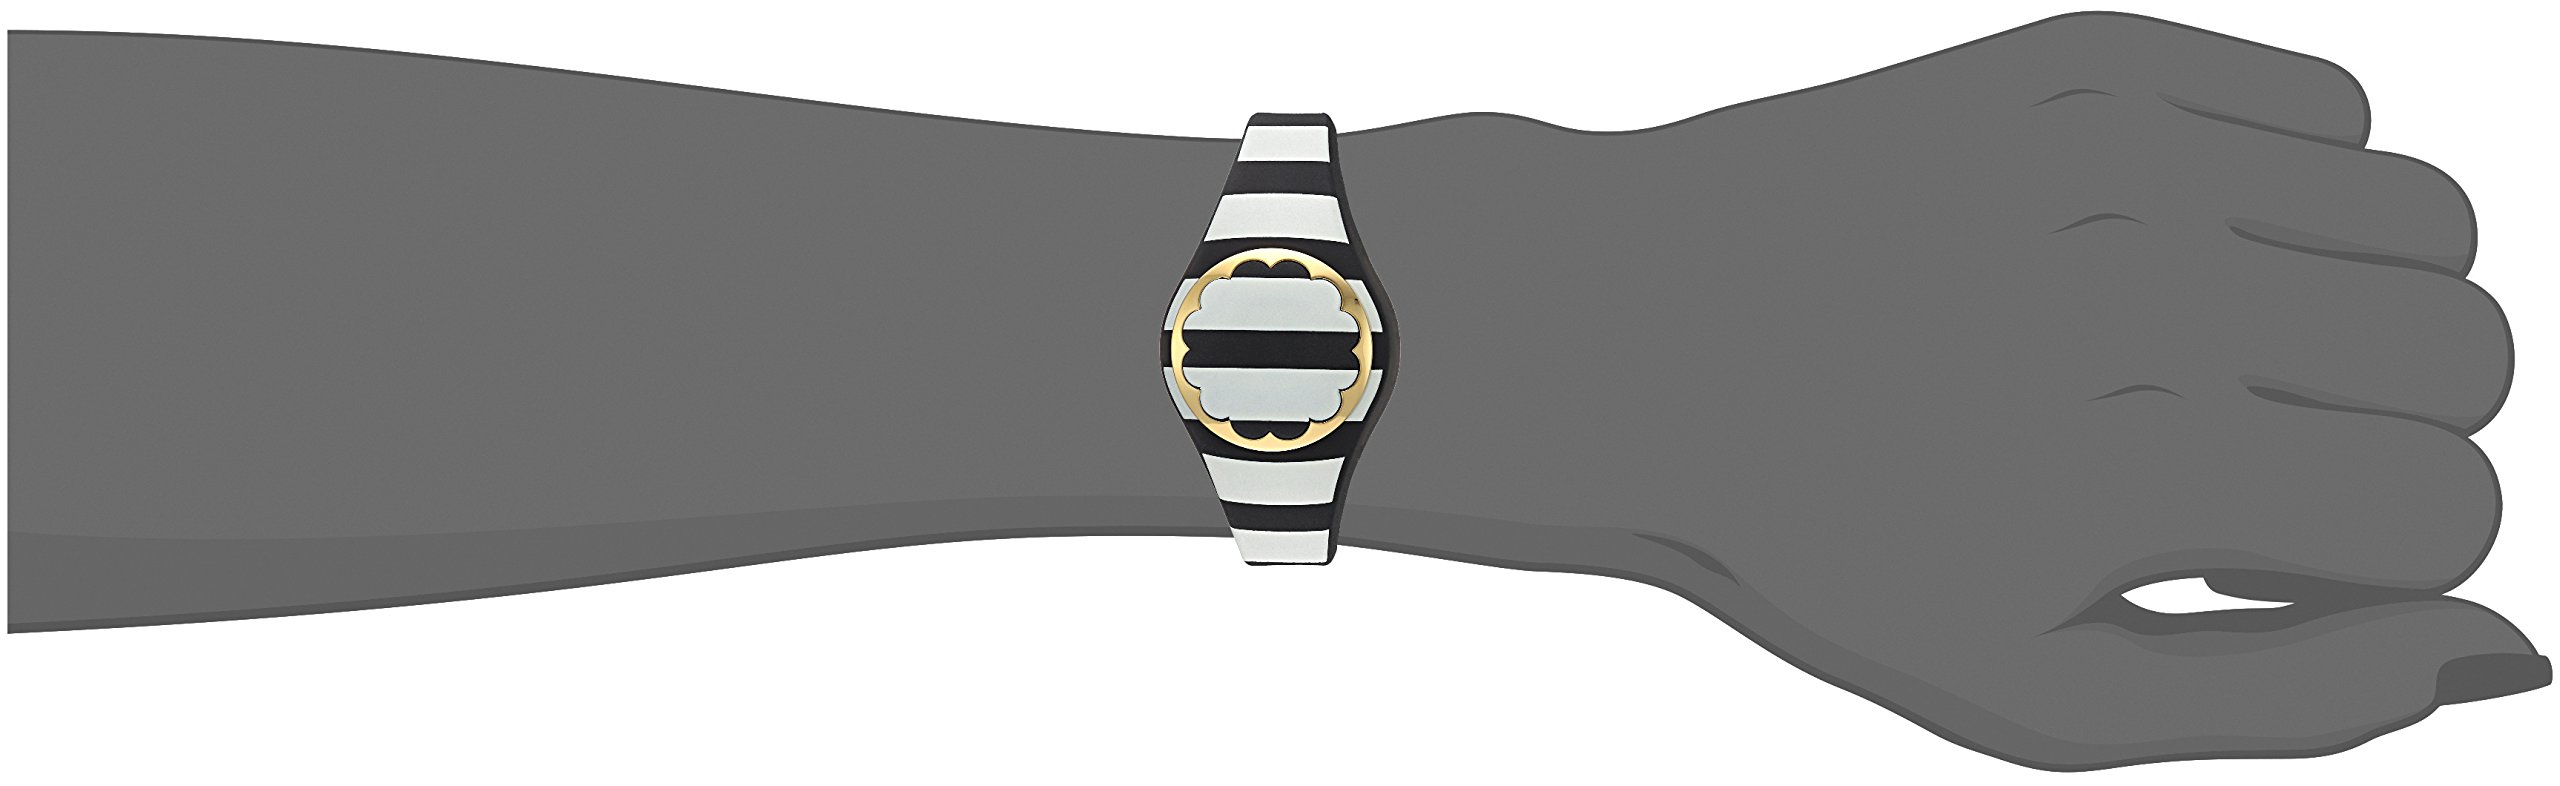 Kate Spade New York black and white stripe scallop activity tracker by Kate Spade New York (Image #7)